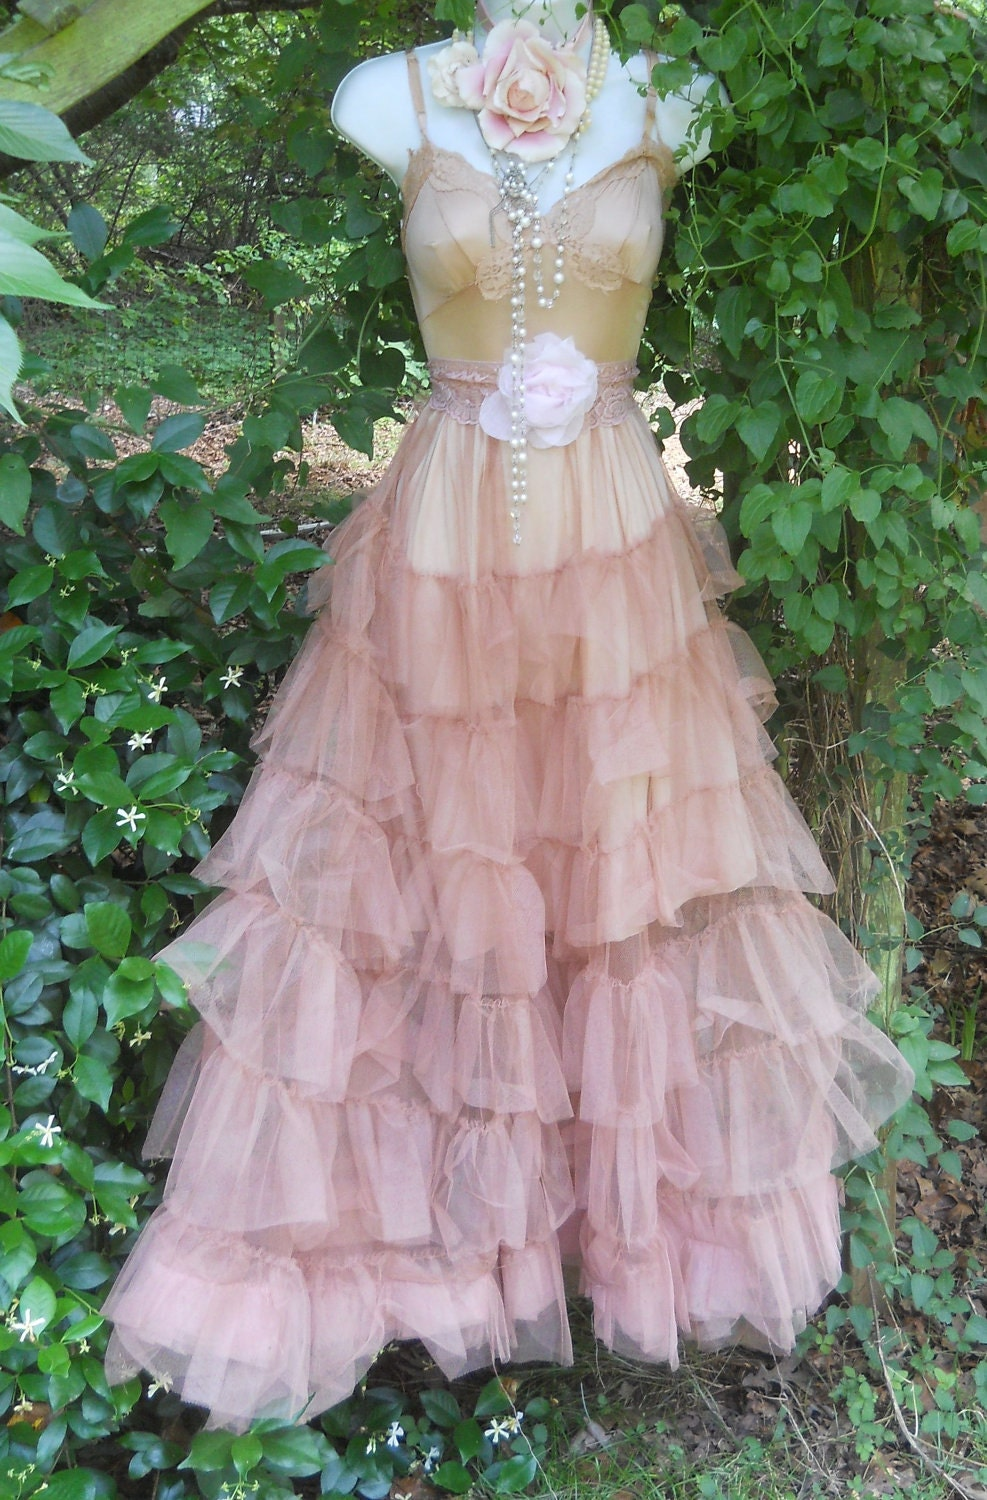 Ruffle tulle dress tea stained wedding crinoline vintage for Pink ruffle wedding dress